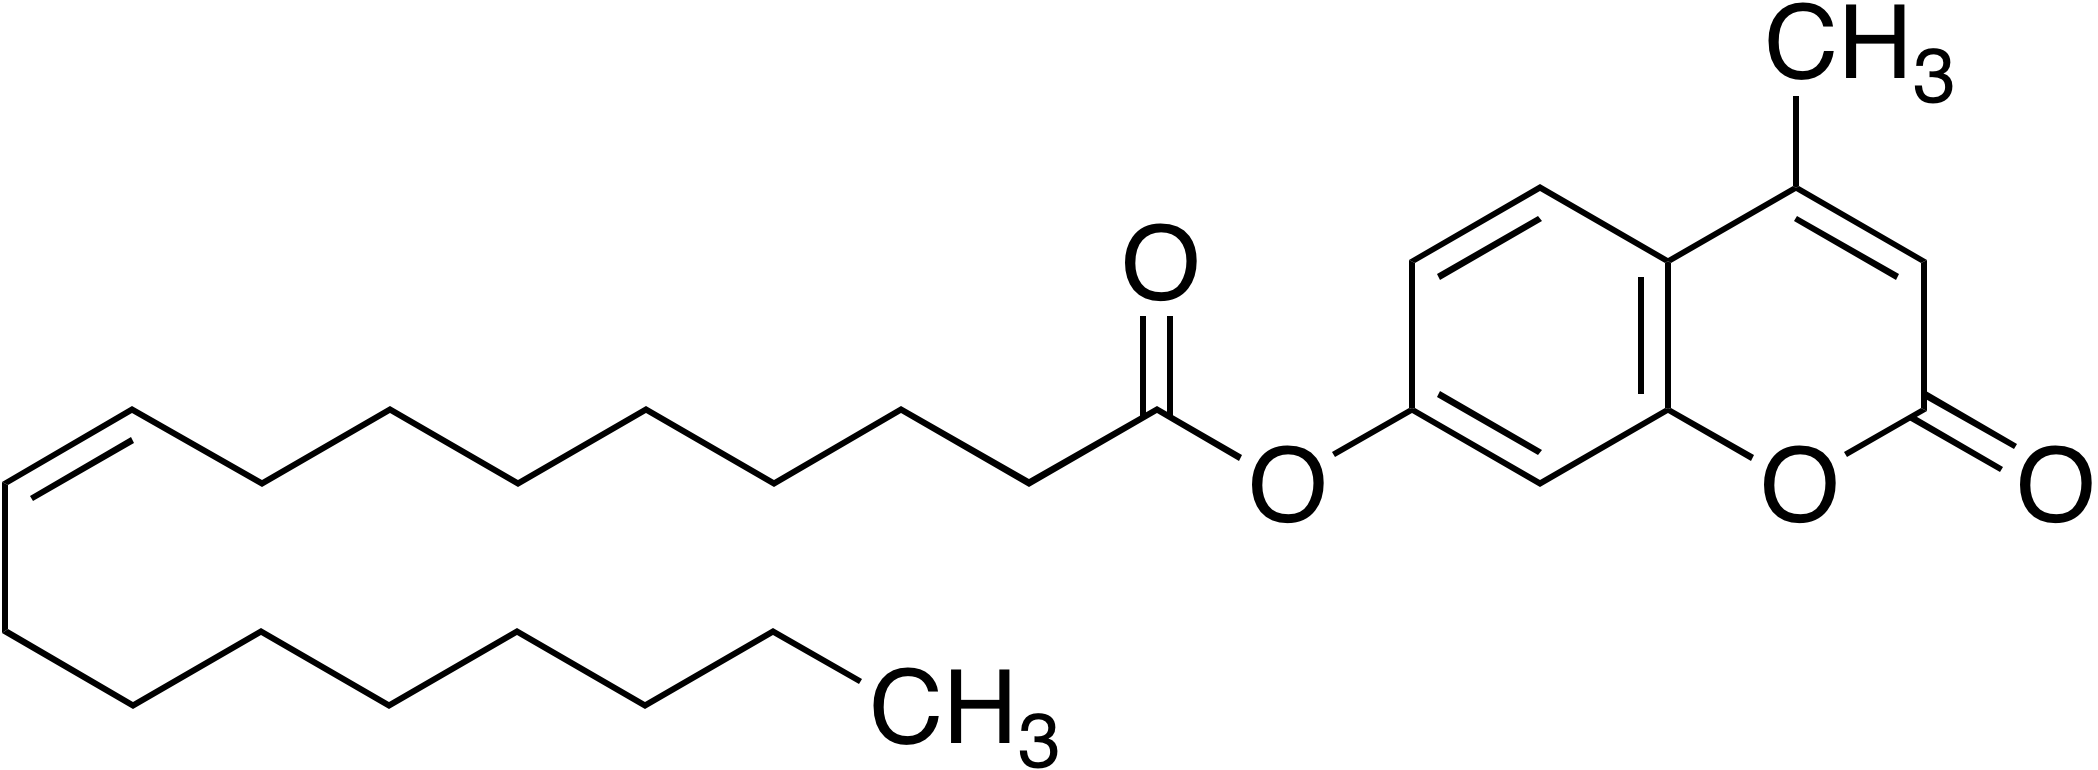 4-Methylumbelliferyl oleate